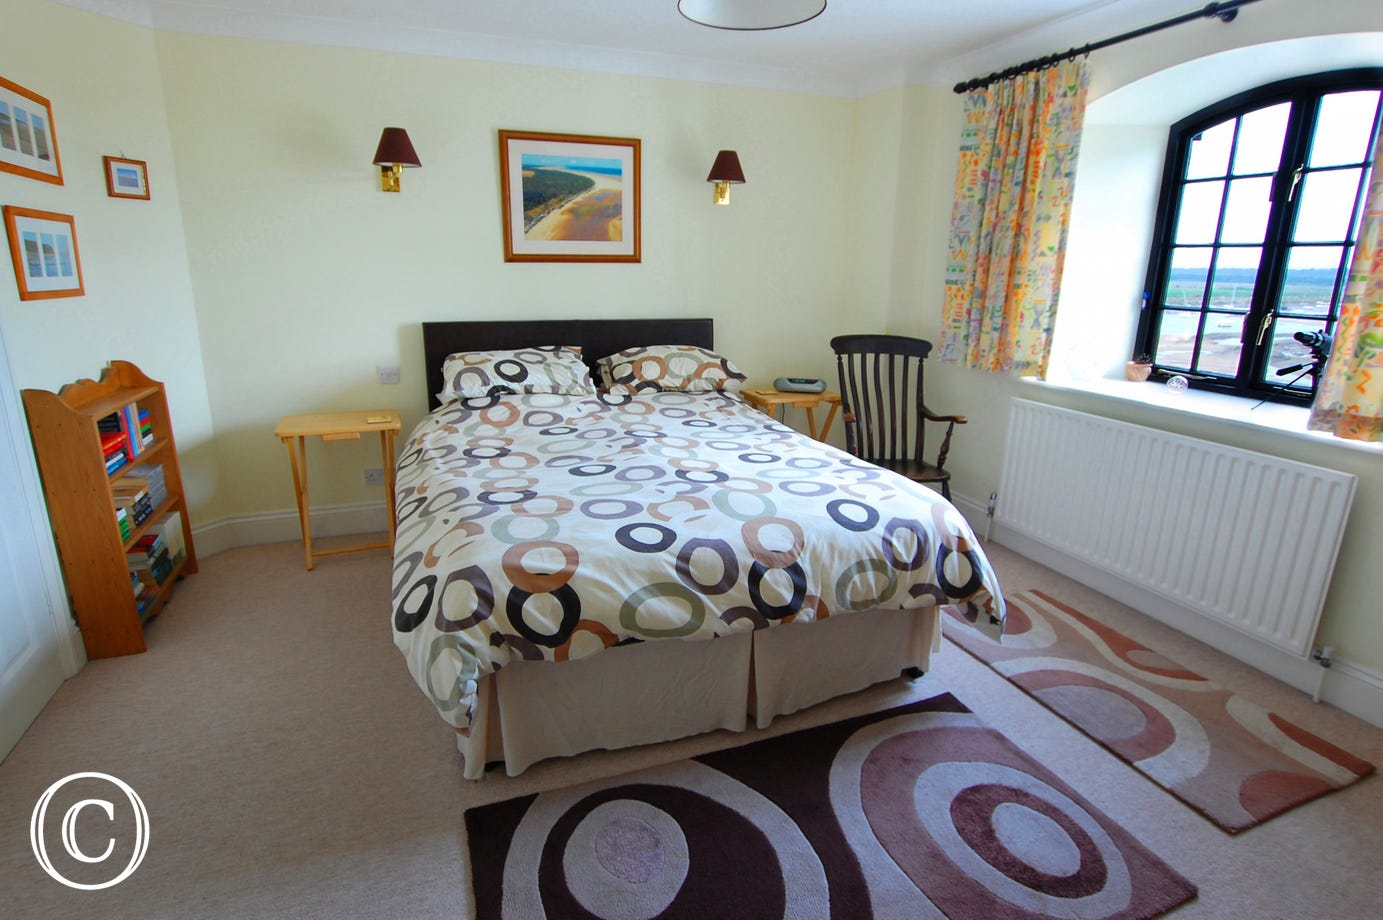 A double bedded room with views out to sea.